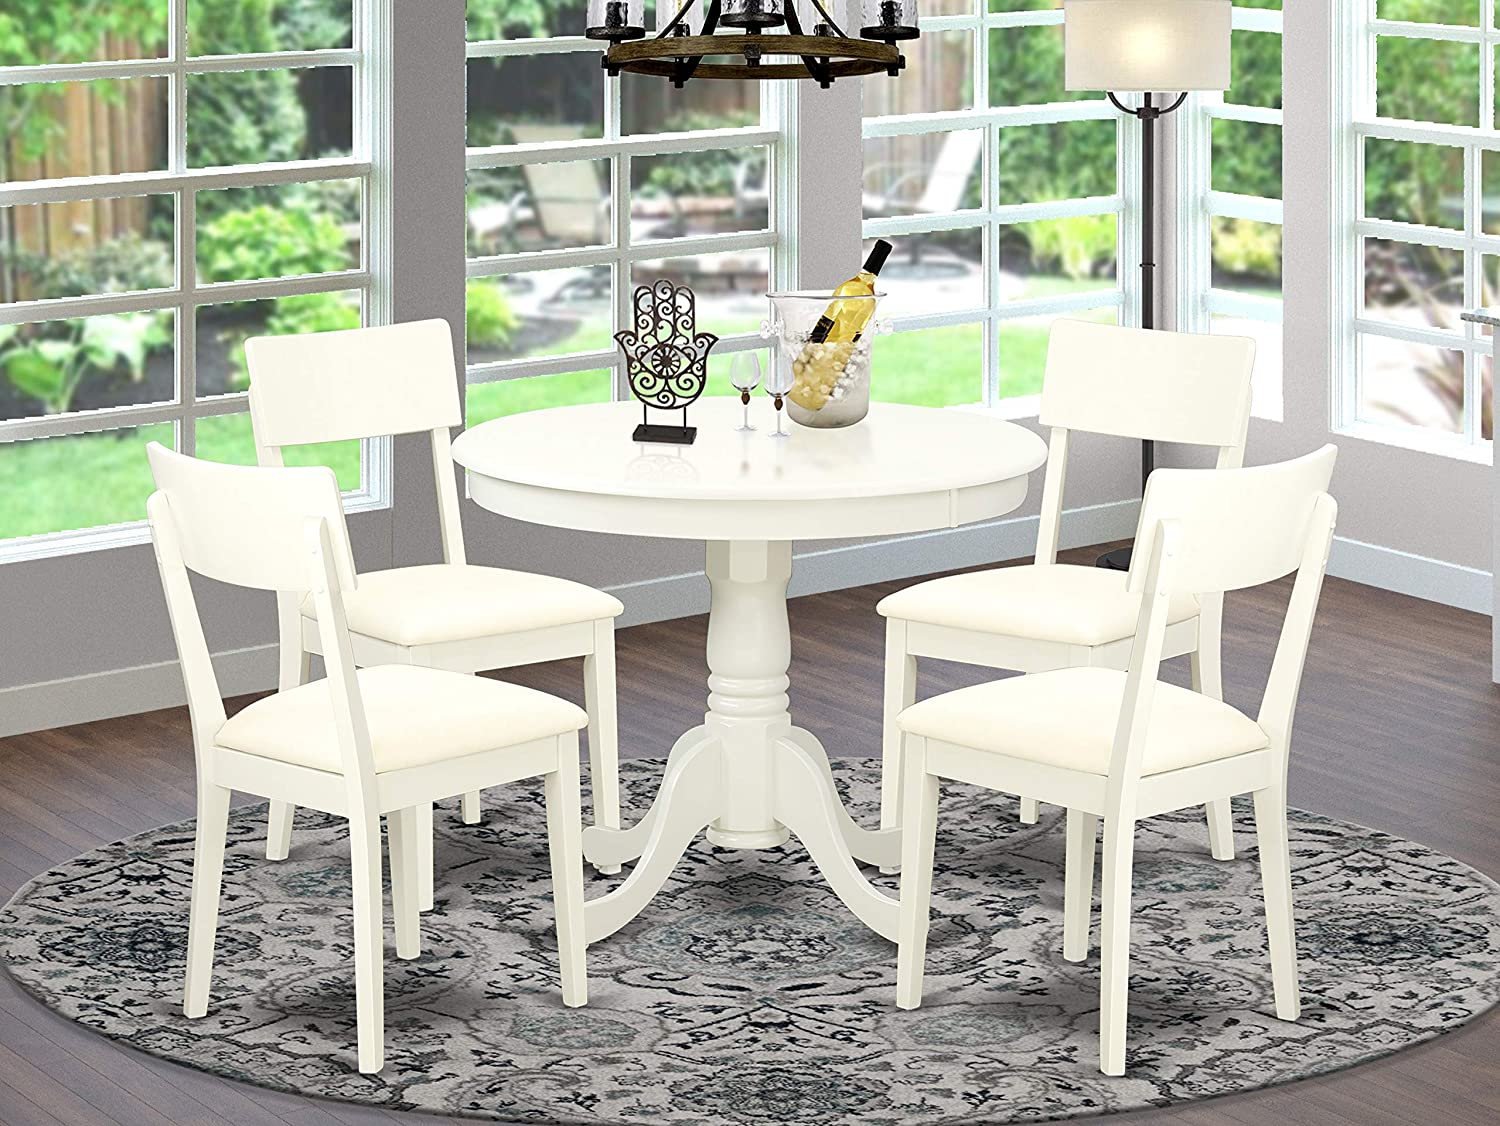 East-West Furniture ANAD5-LWH-LC Kitchen Dining Table Set- 4 Fantastic Wooden Dining Chairs - An Attractive Pedestal Dining Table- Faux Leather seat and Linen White Finish Round Wooden Dining Table